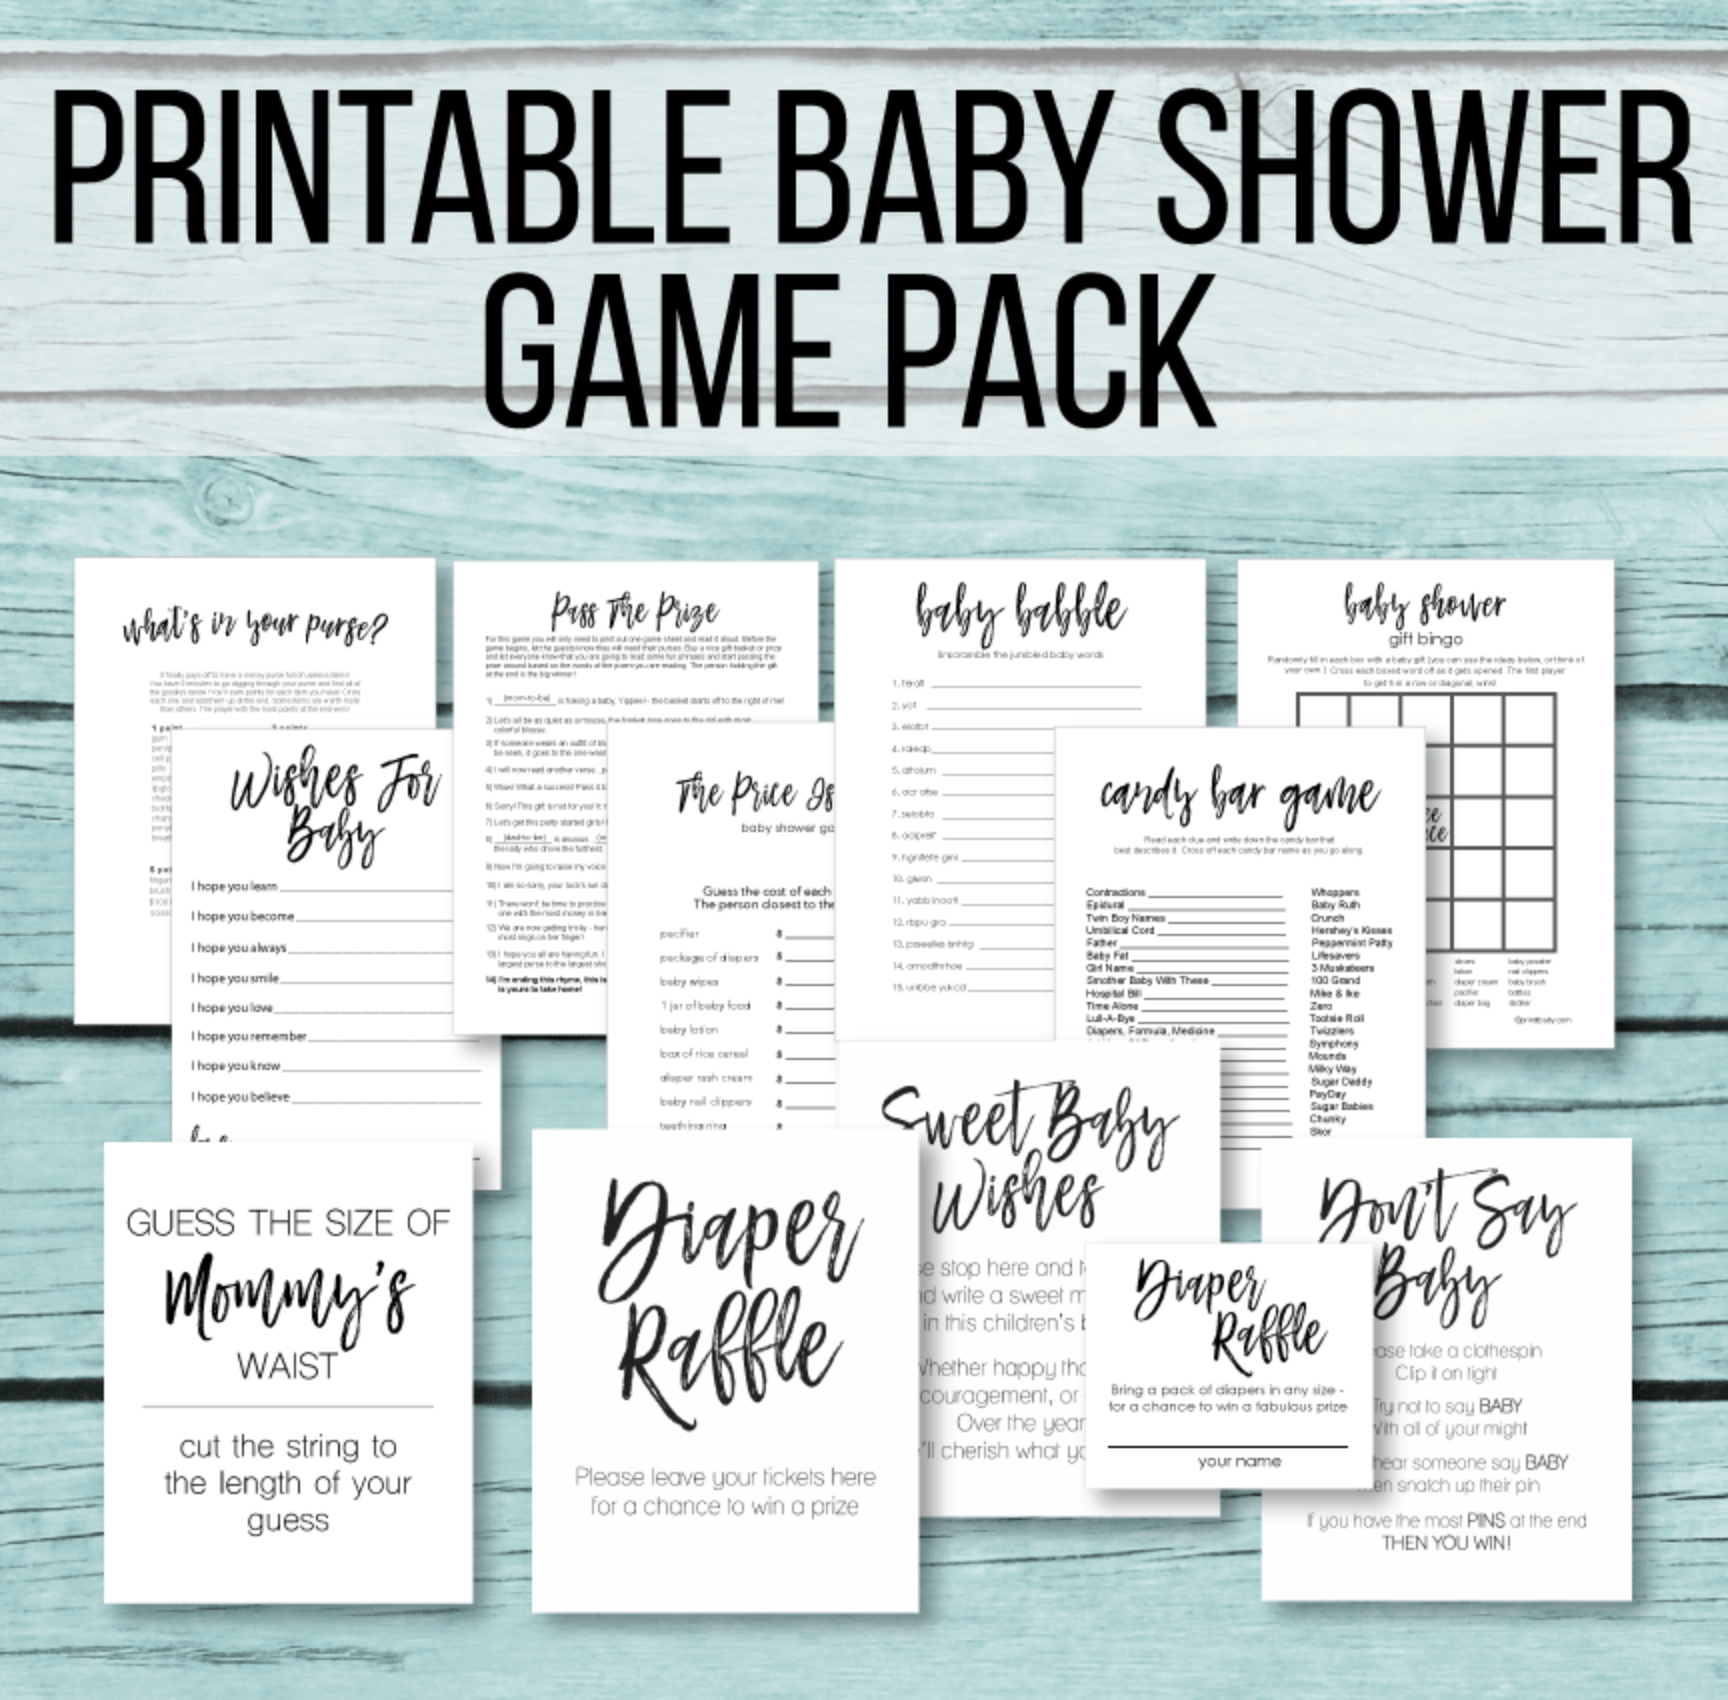 11 Printable Baby Shower Games - Black & White Mini Game Pack